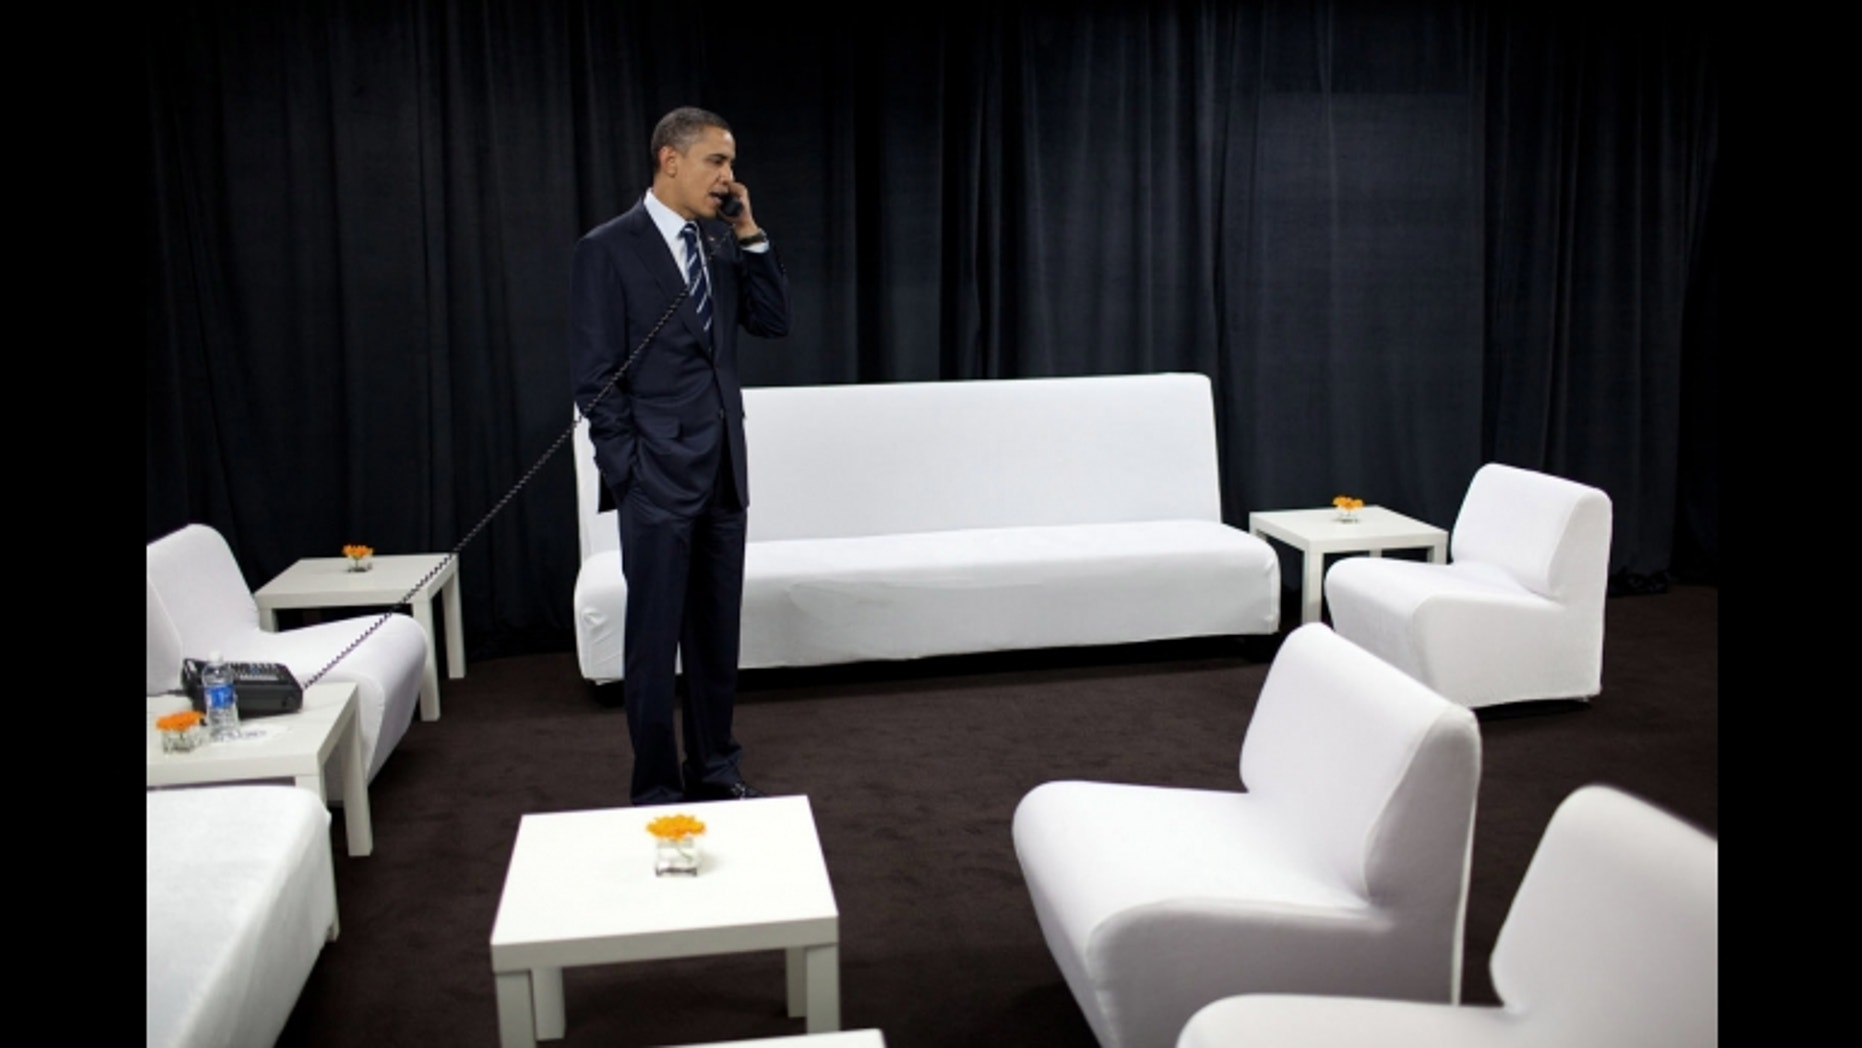 President Barack Obama talks on the phone with National Security Advisor Tom Donilon about developments in the Middle East, backstage at Intel Corporation in Hillsboro, Ore., Feb. 18, 2011. (Official White House Photo by Pete Souza)